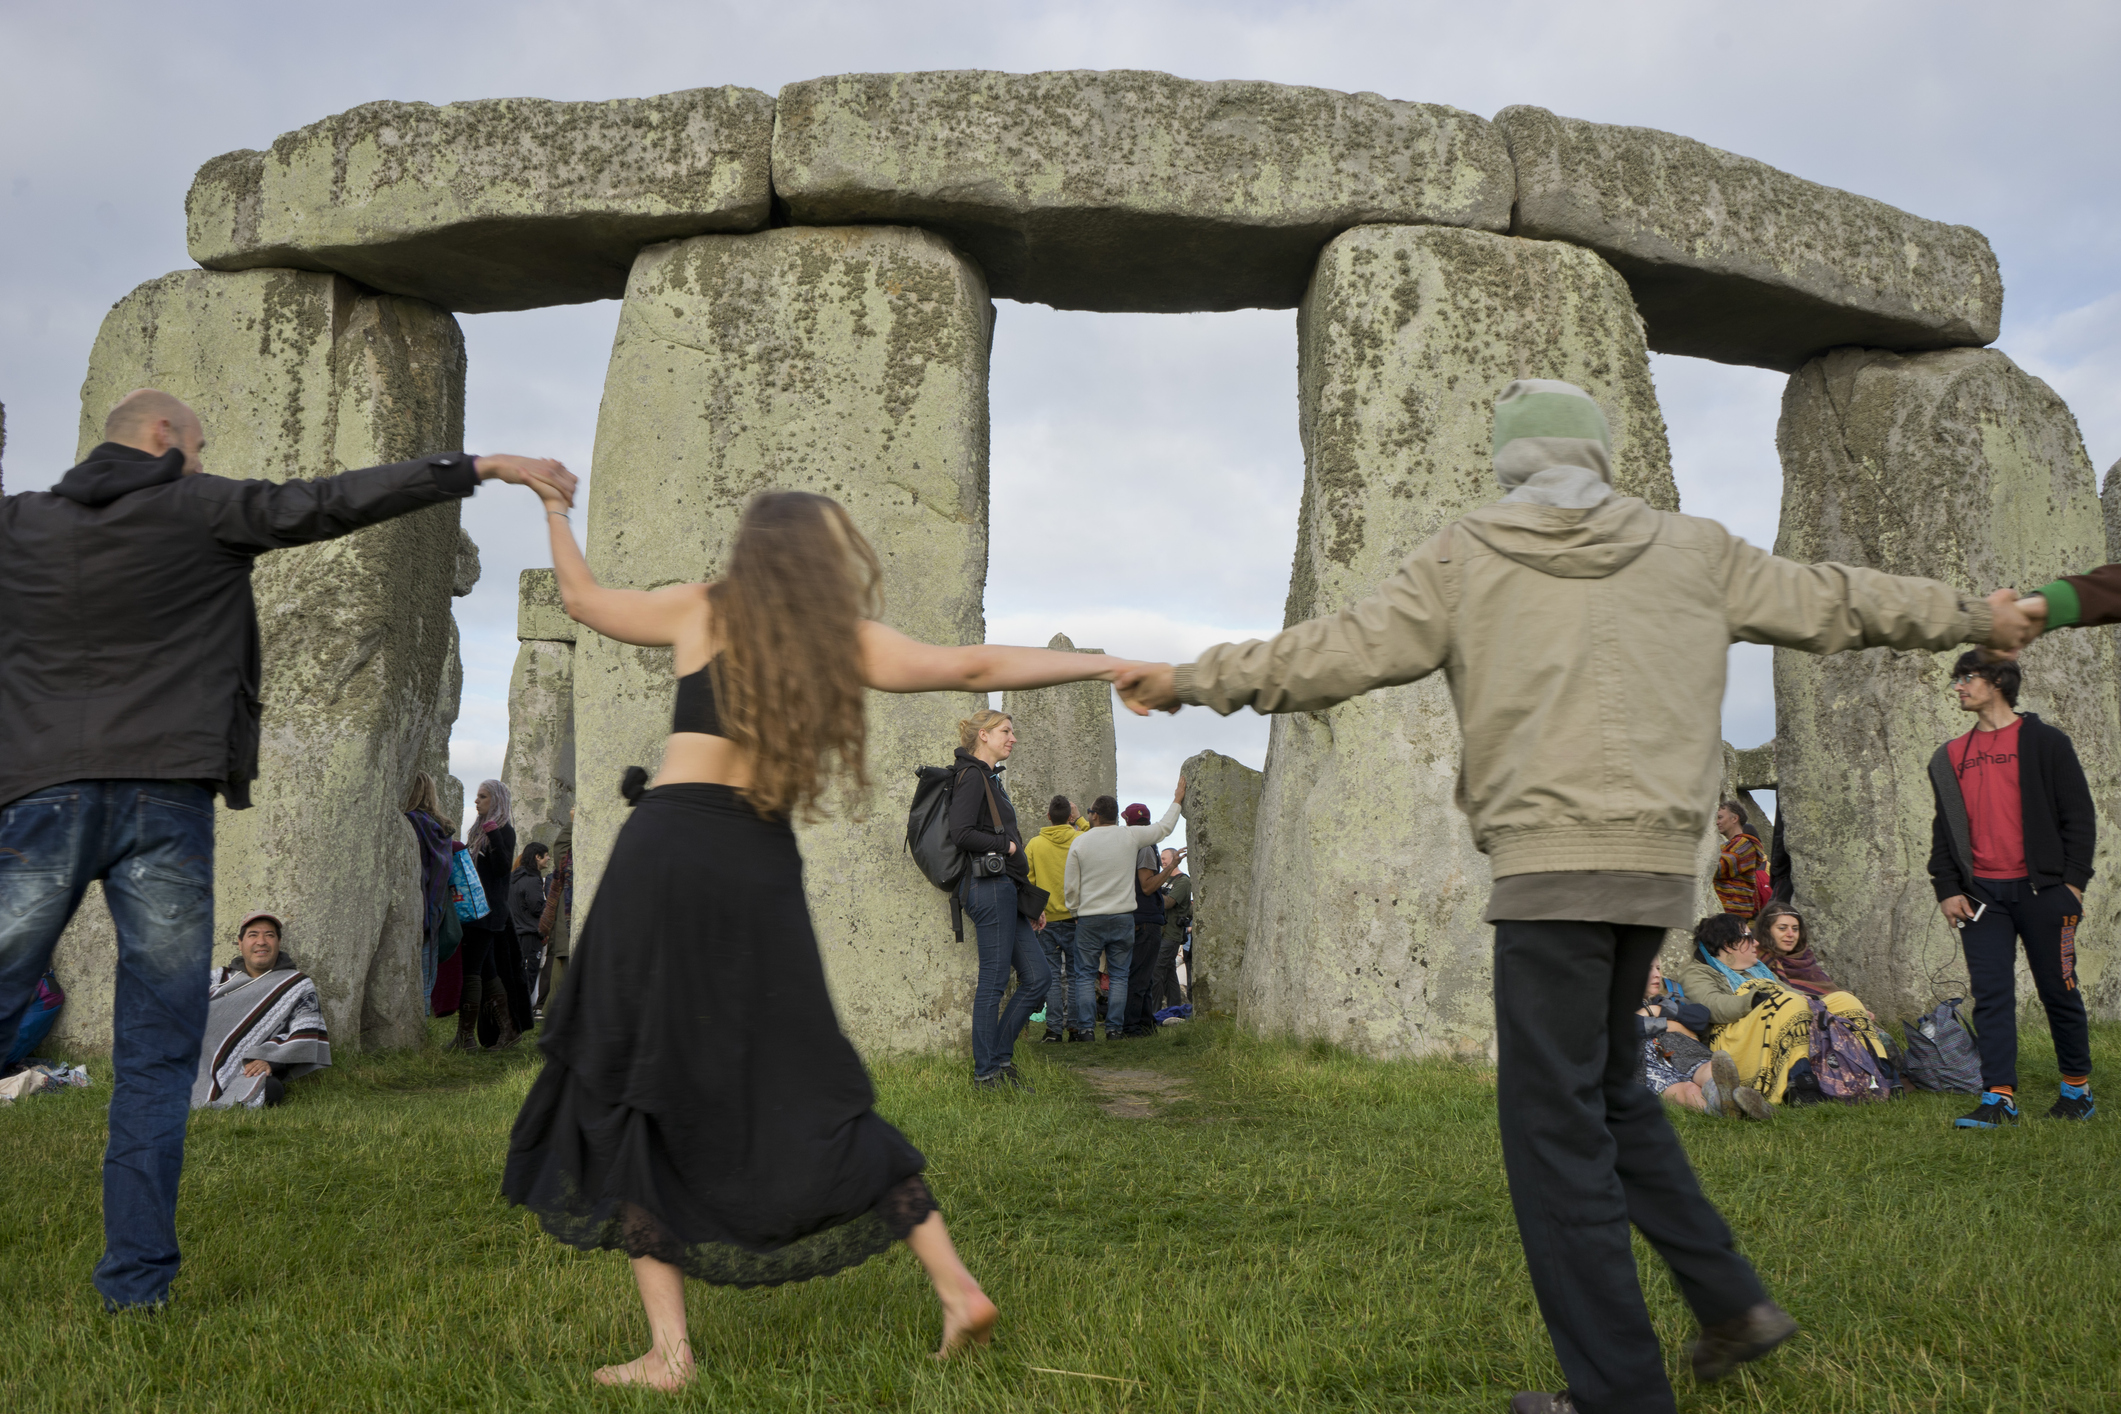 Revelers gather for summer solstice celebrations on June 21, 2016, at Stonehenge in Wiltshire, England.